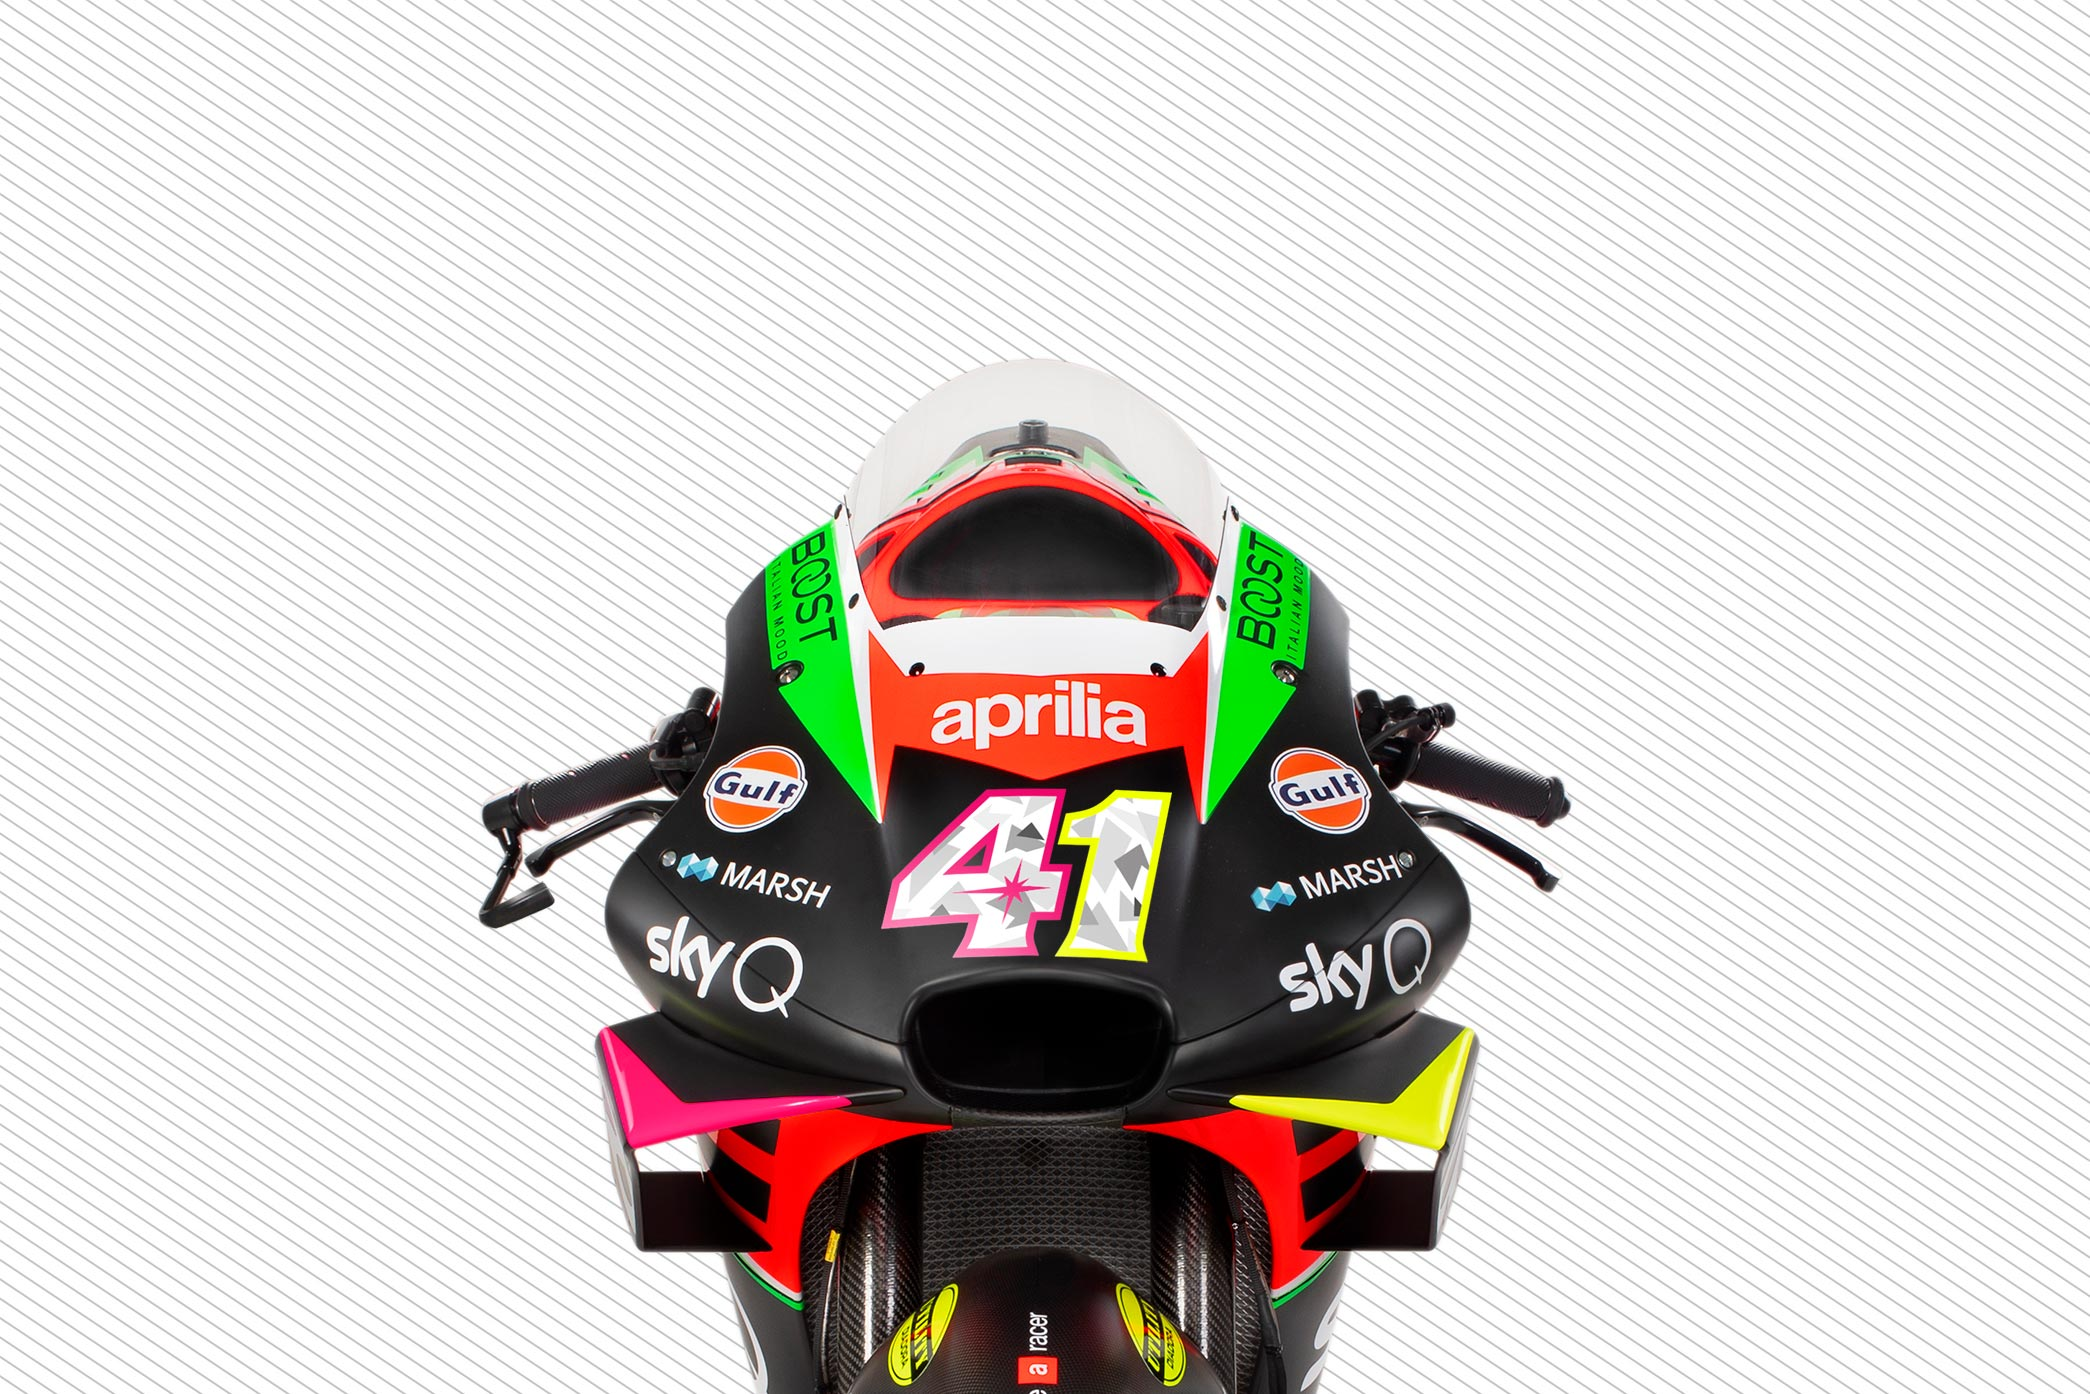 Major Redesigns Coming For The Aprilia Rs Gp In 2020 Asphalt Rubber